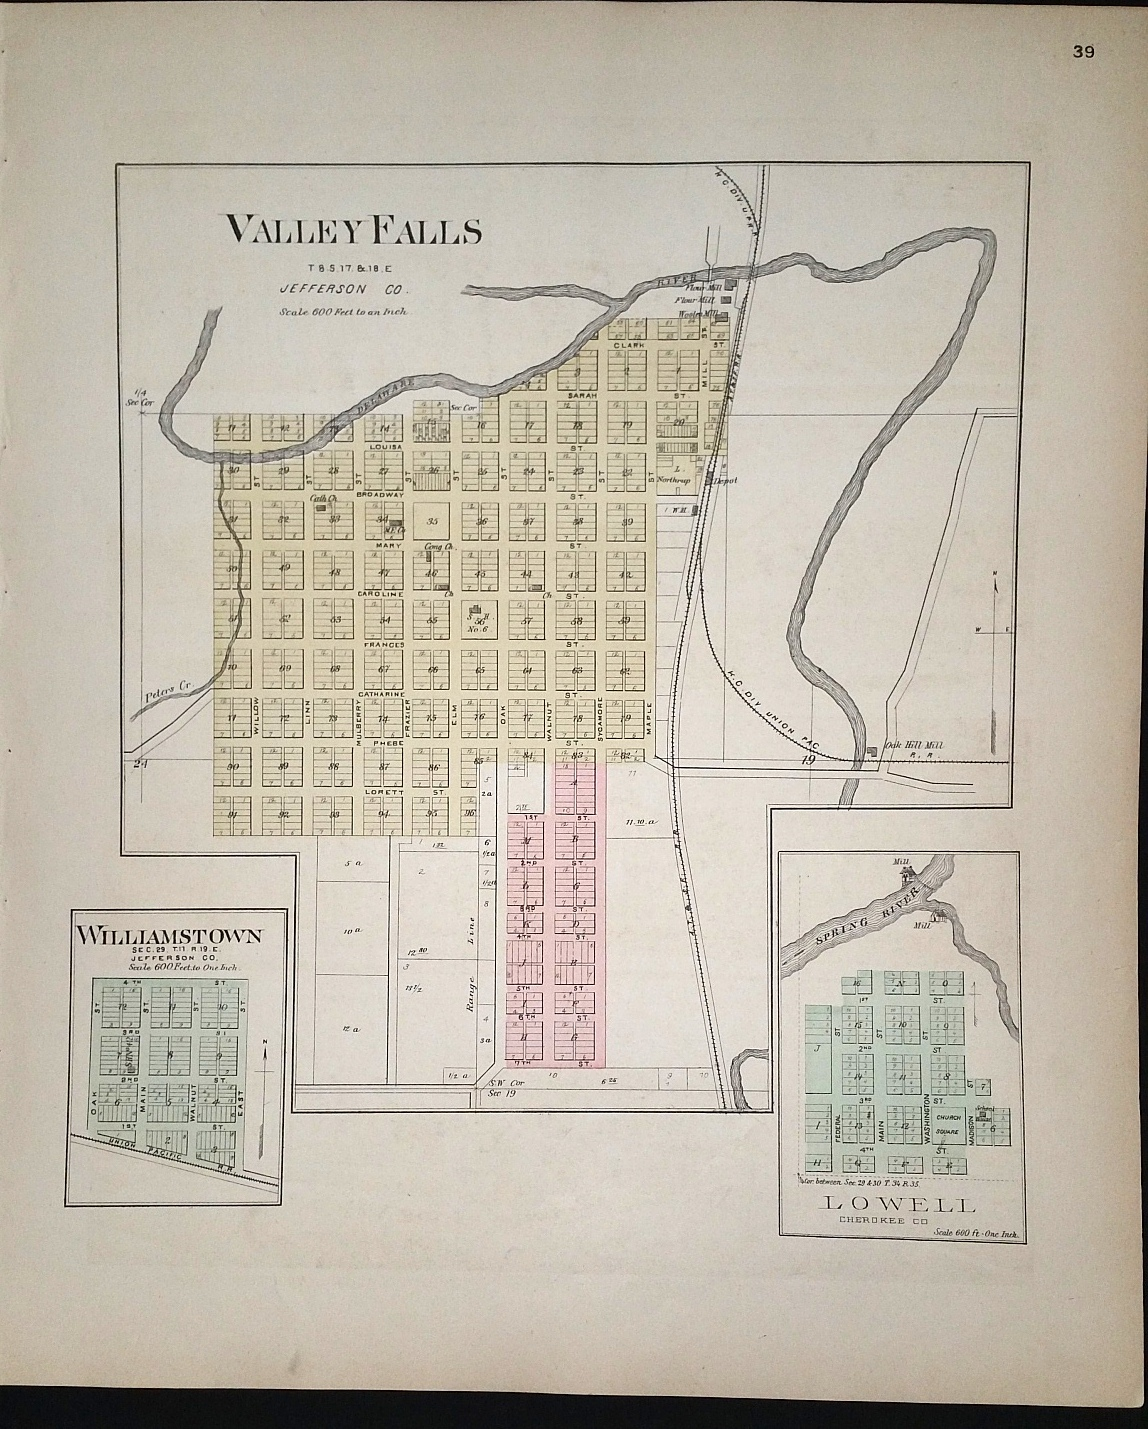 Image for [Map] Valley Falls, & Williamstown (of Jefferson County, Kansas), & Lowell (of Cherokee Co.) [backed with] Oskaloosa (of Jefferson Co.), Lea Walk, Bonanza, Sherman City, & Neutral (of Cherokee Co.)